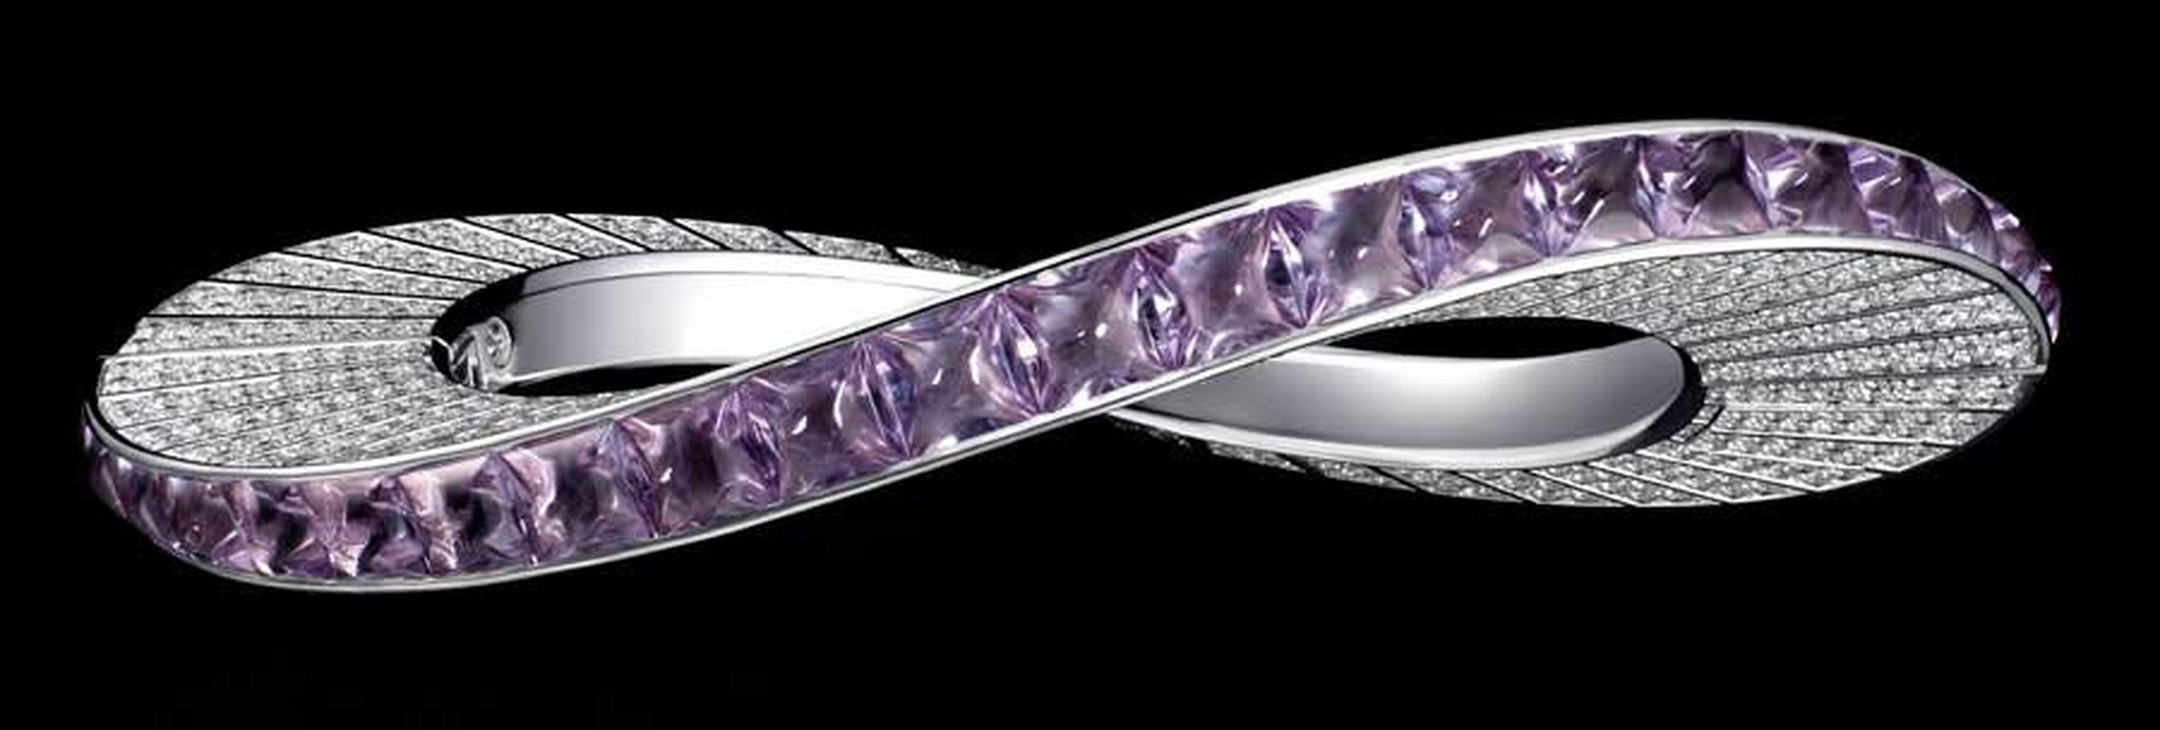 Cartier Biennale white gold Bracelet featuring lavender amethyst and diamonds. Image by: Vincent Wulveryck © Cartier 2012